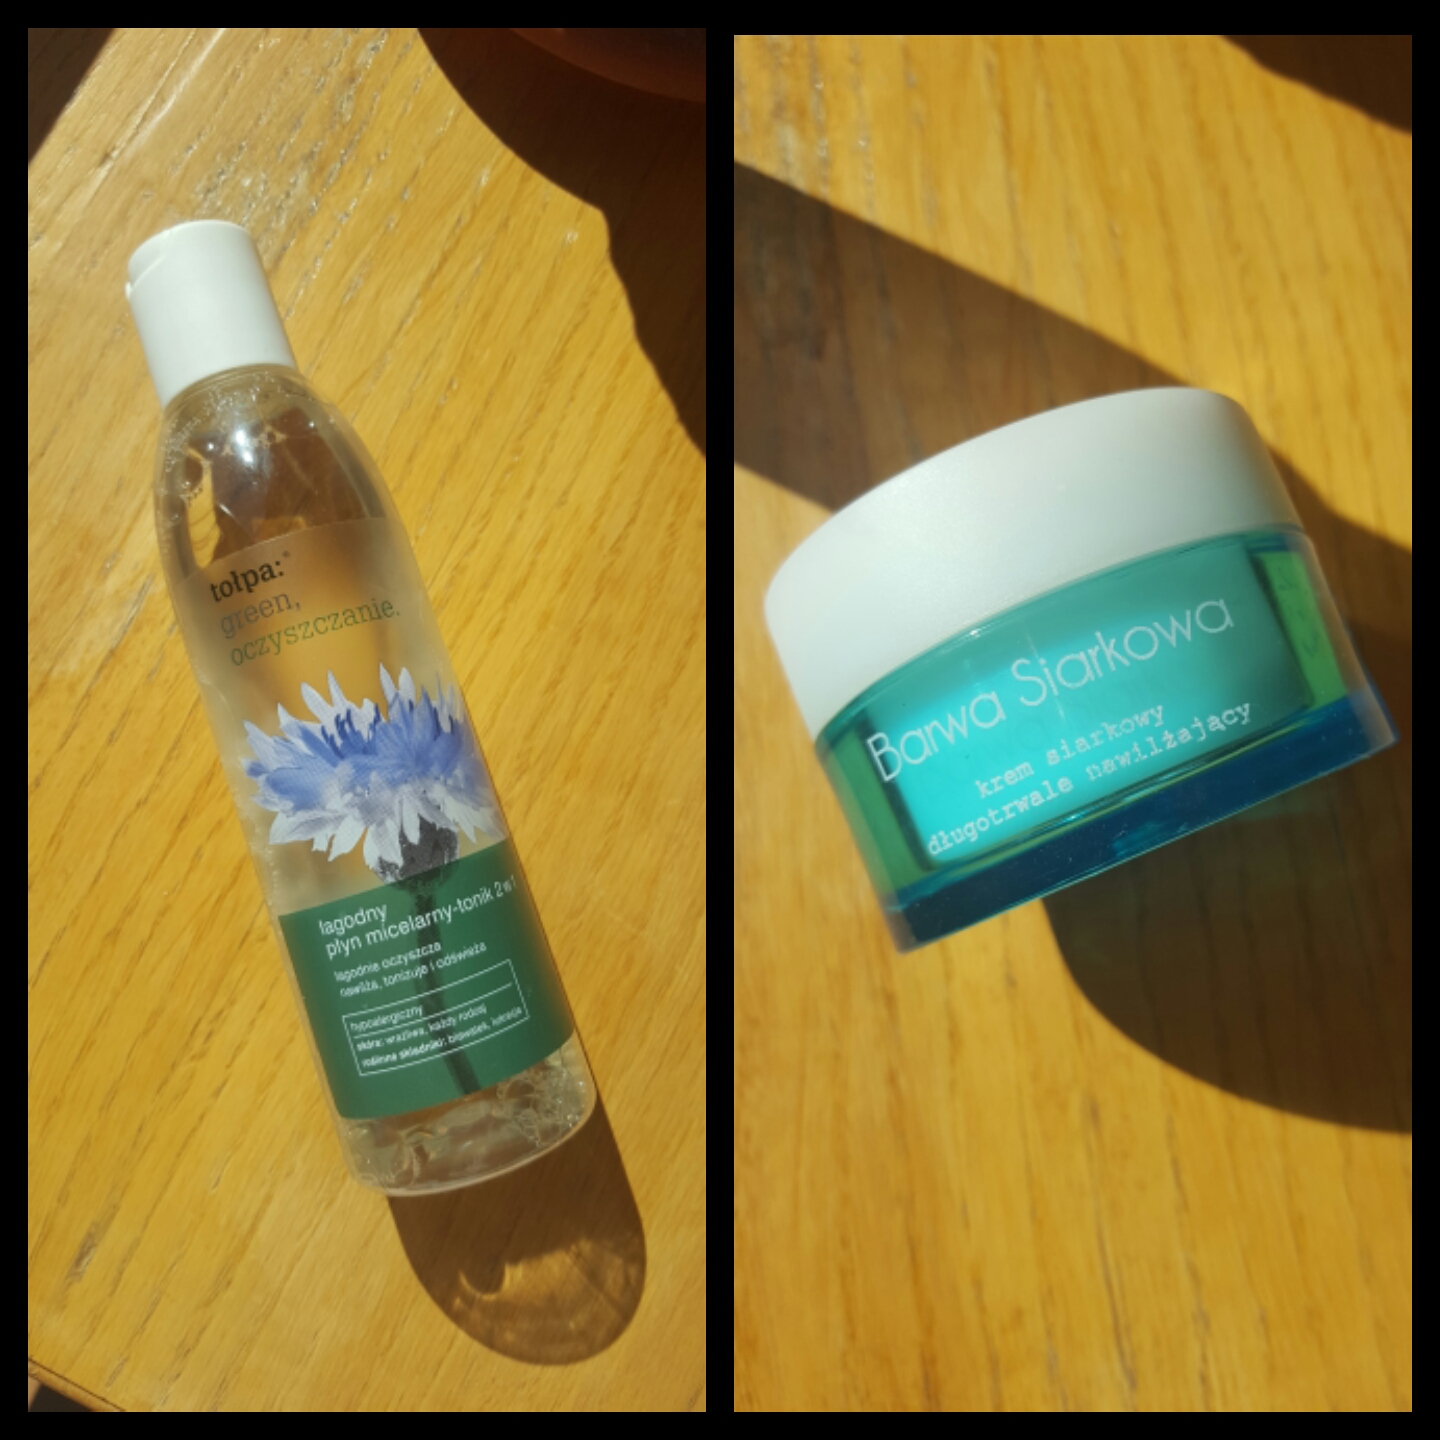 My make-up and face care